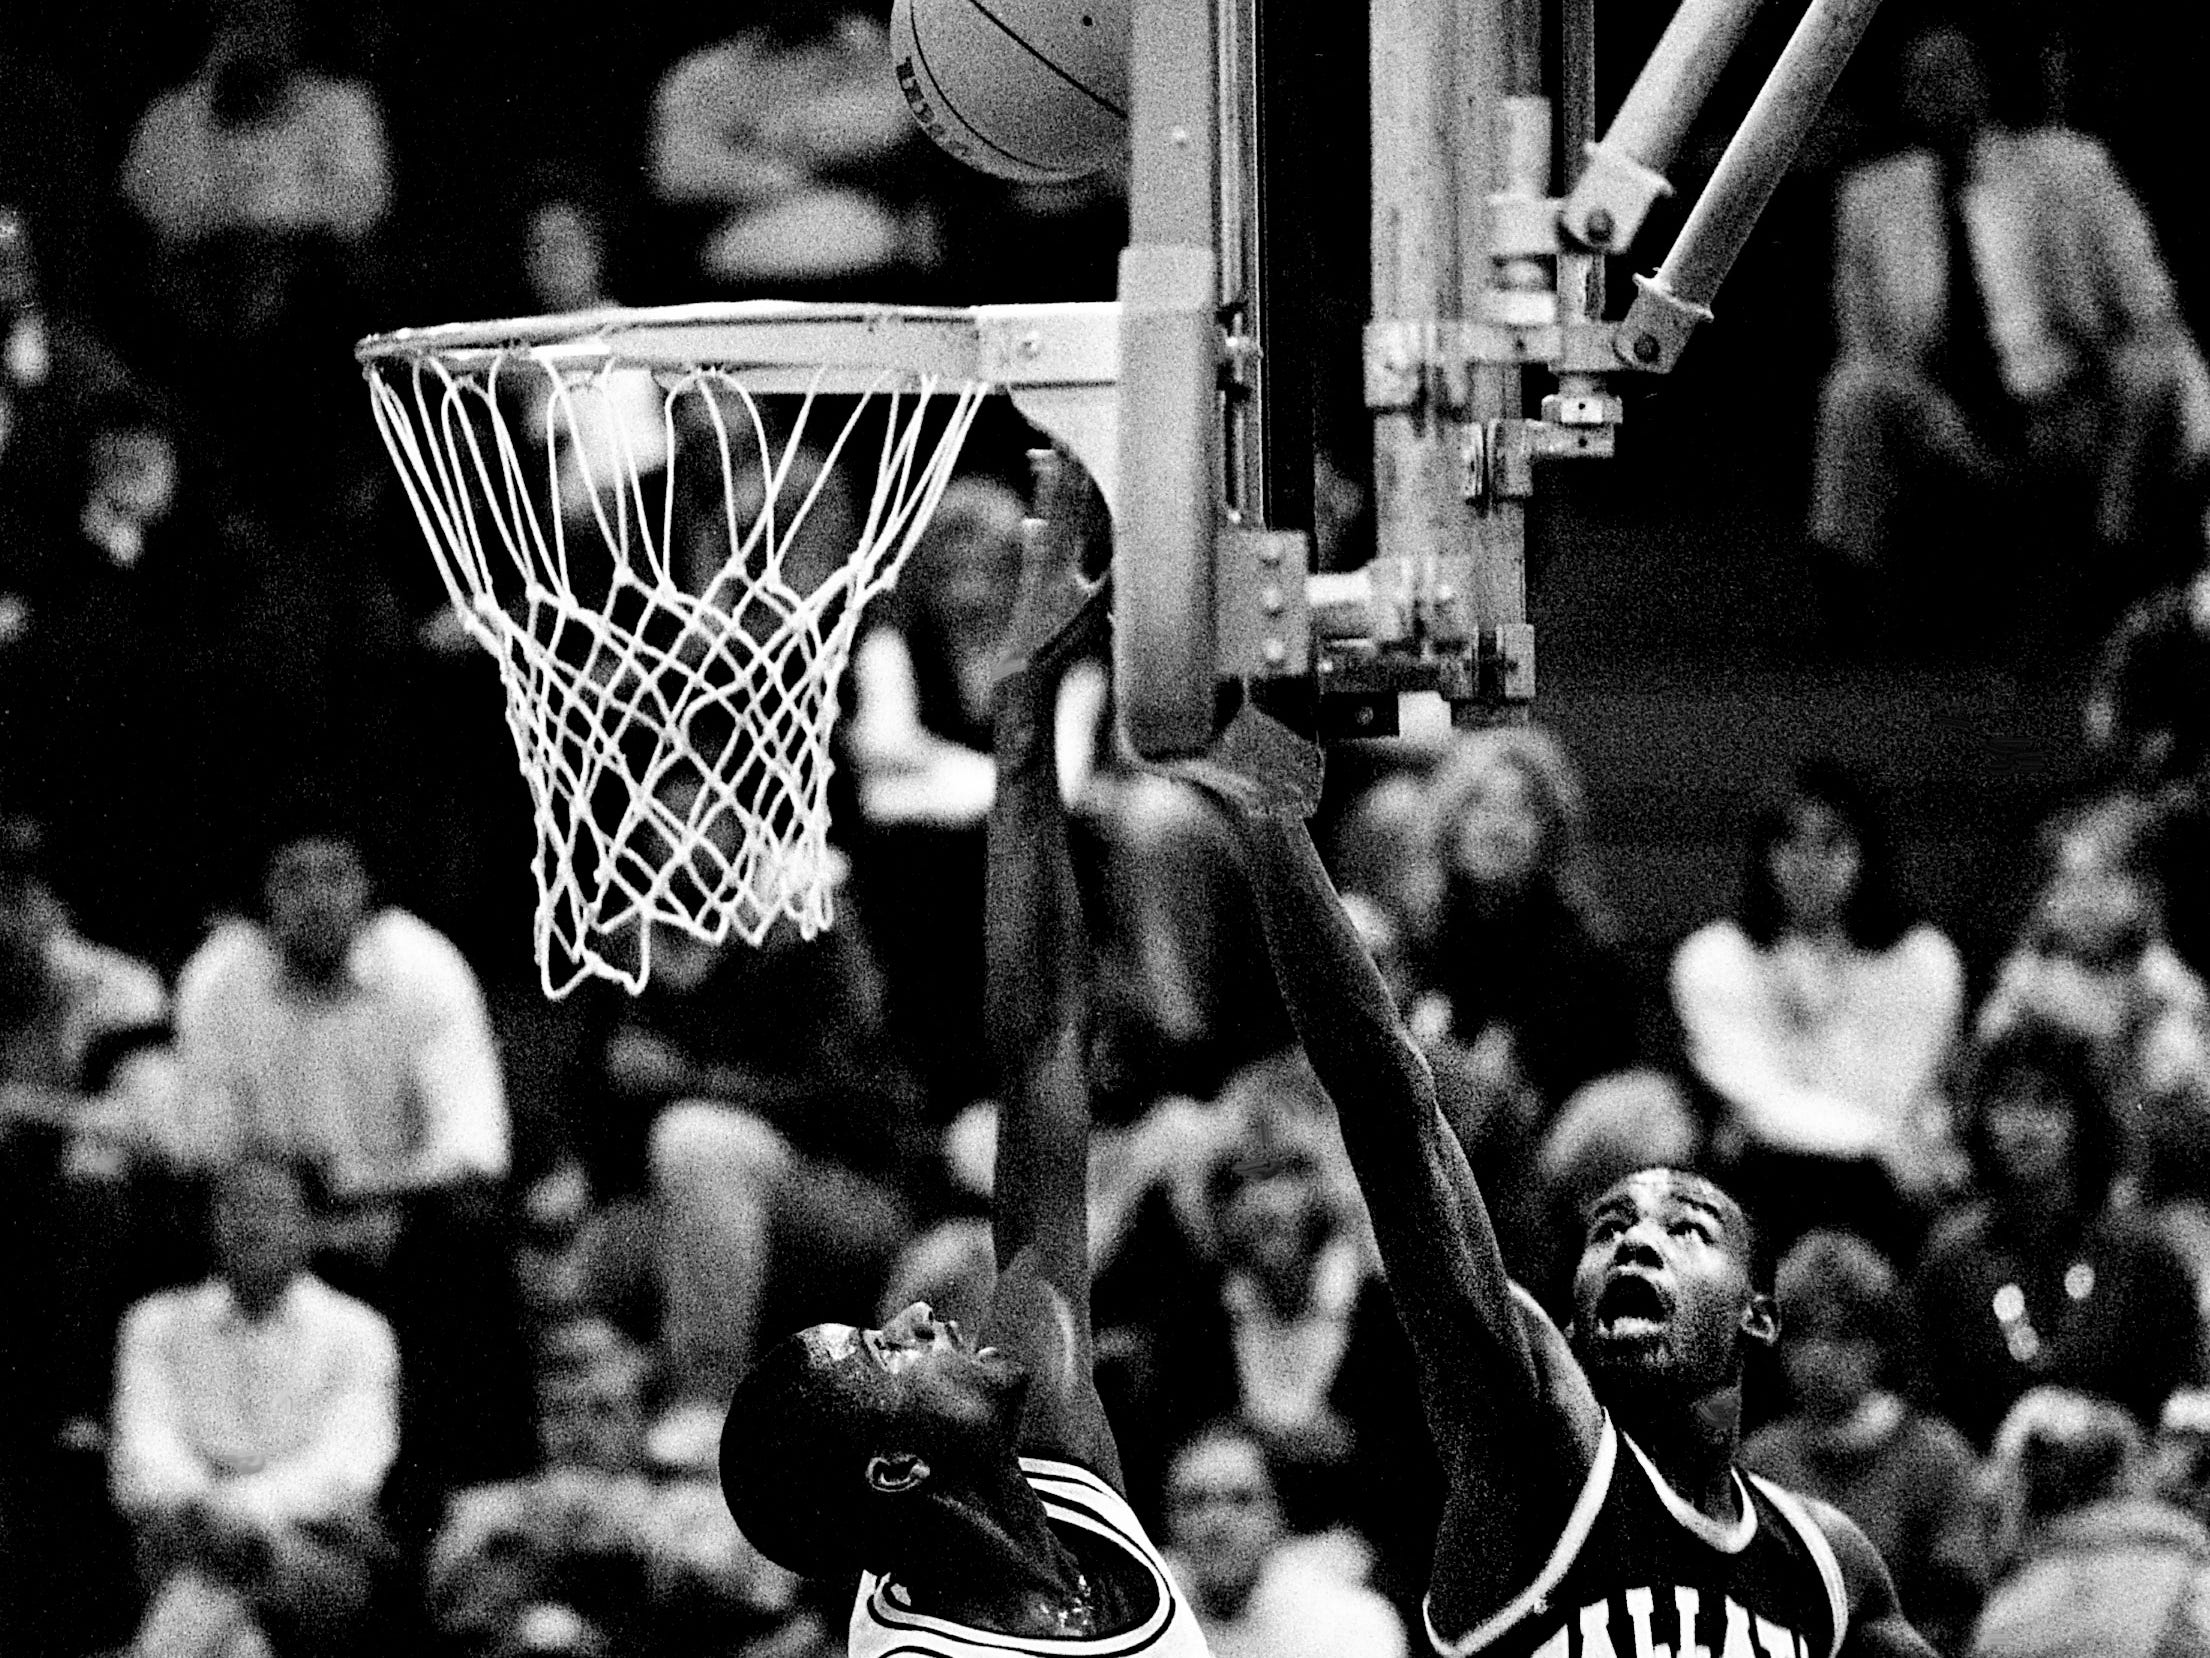 Gallatin High's Malcolm Montgomery (23) gets a shot up over the reach of Clarksville High's Henry Thomas in the TSSAA Region 5-AAA semifinal at Volunteer State in Gallatin on March 1, 1989. Montgomery scored 23 points, but Thomas scored a game high 33 points in leading Clarksville to a 94-82 victory.